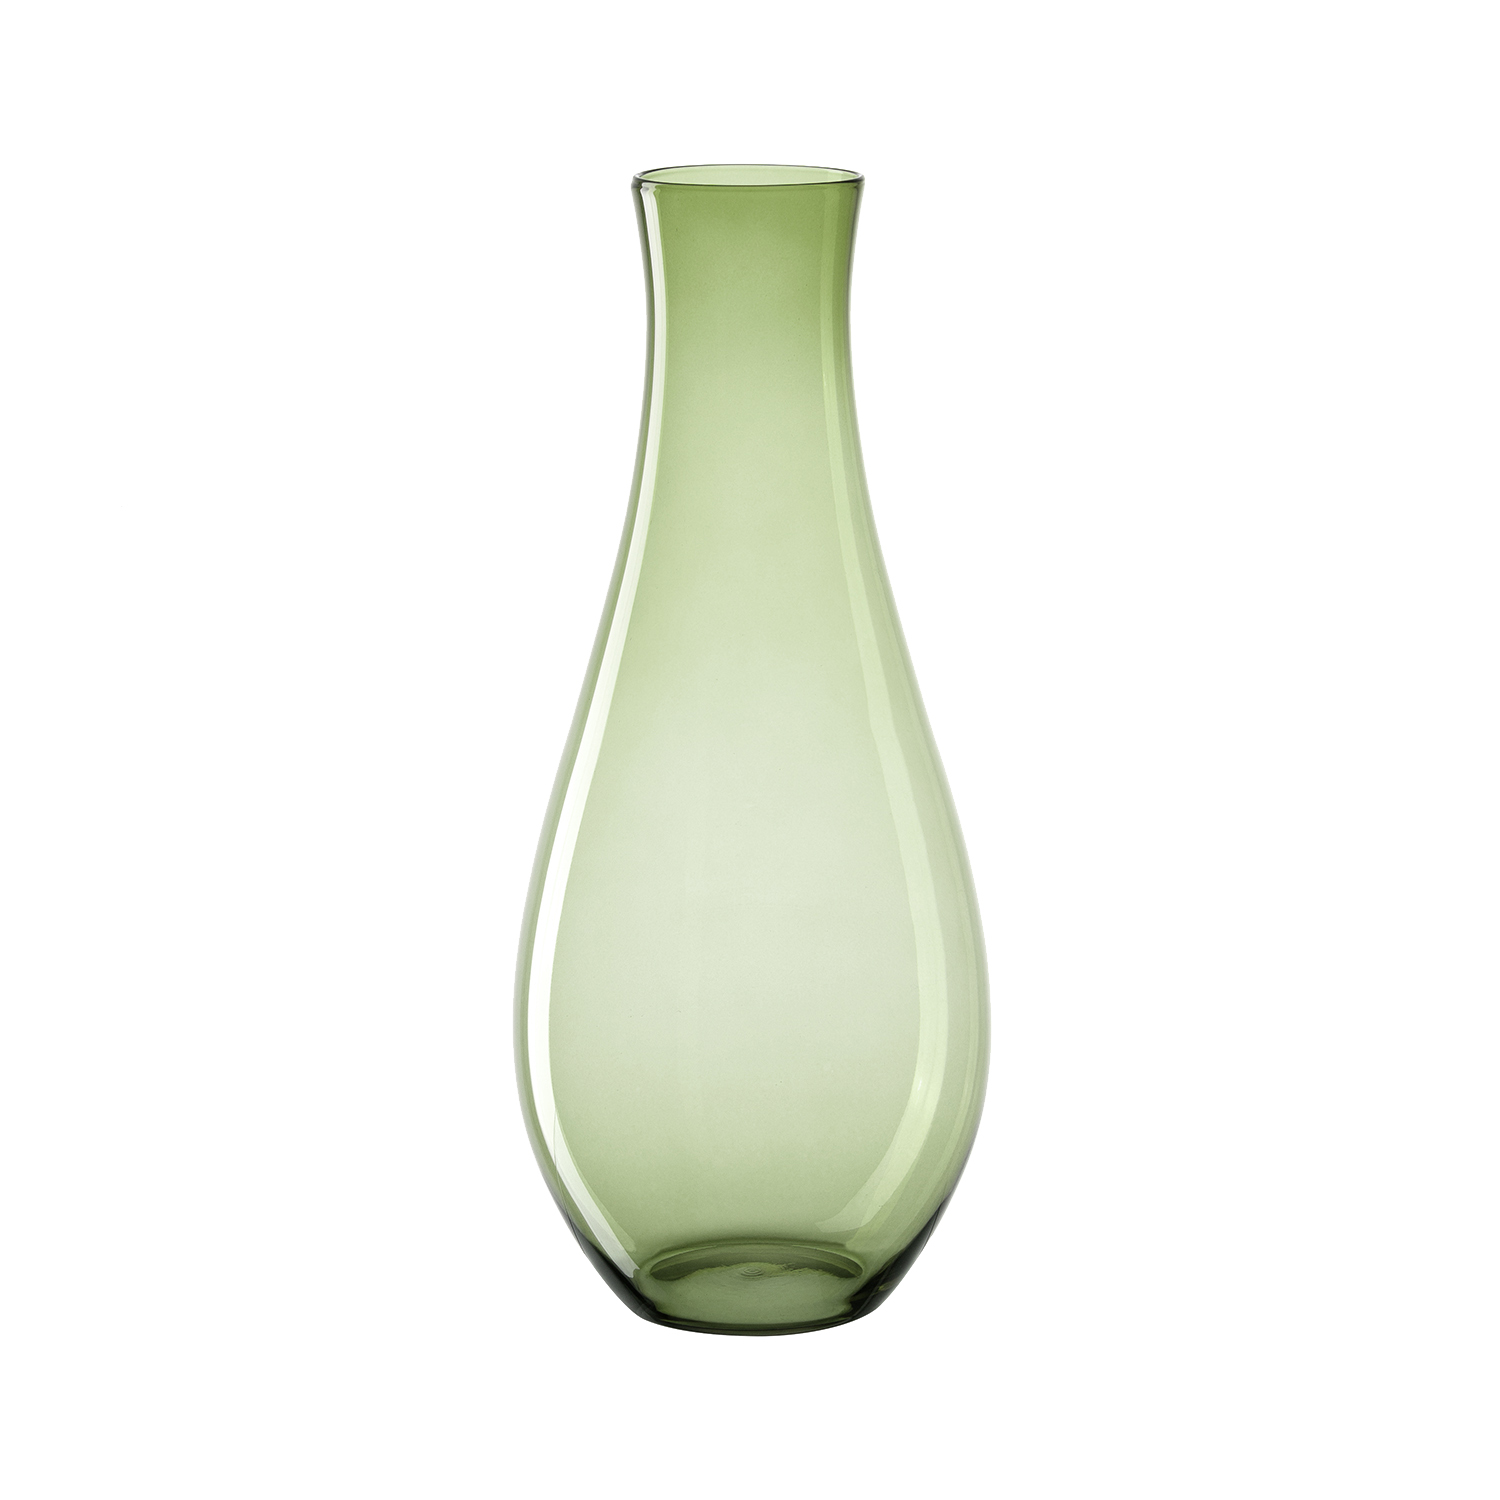 Leonardo Vase Leonardo Giardino Vase Flower Vase Decoration Decor Glass Green H 60 Cm 10347 At About Tea De Shop